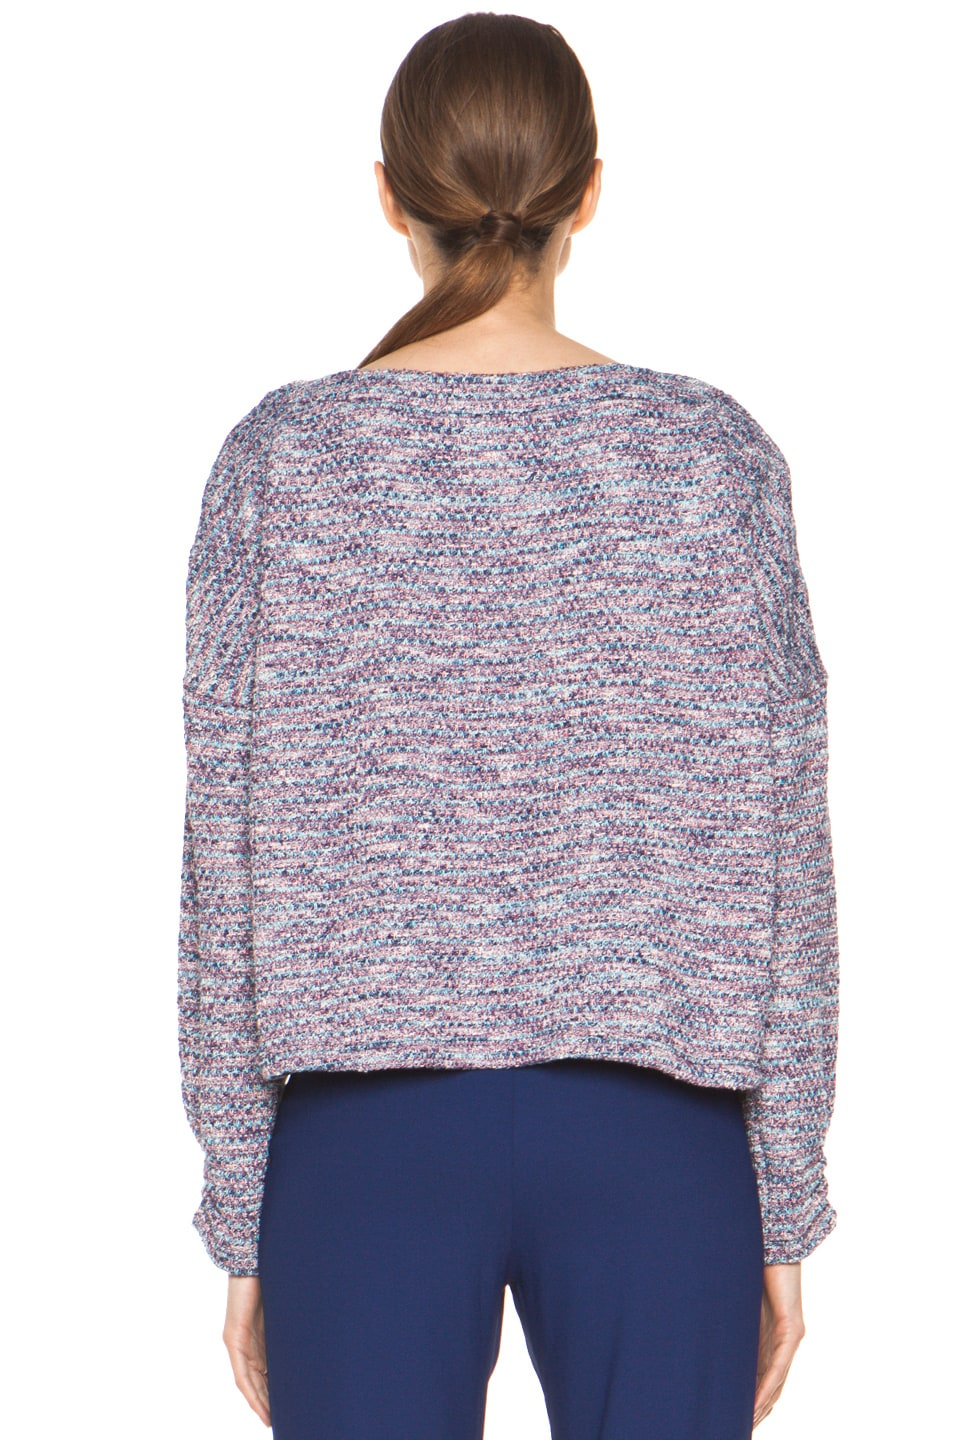 Image 5 of Girl. by Band of Outsiders Knit Tweed Sweater in Multi